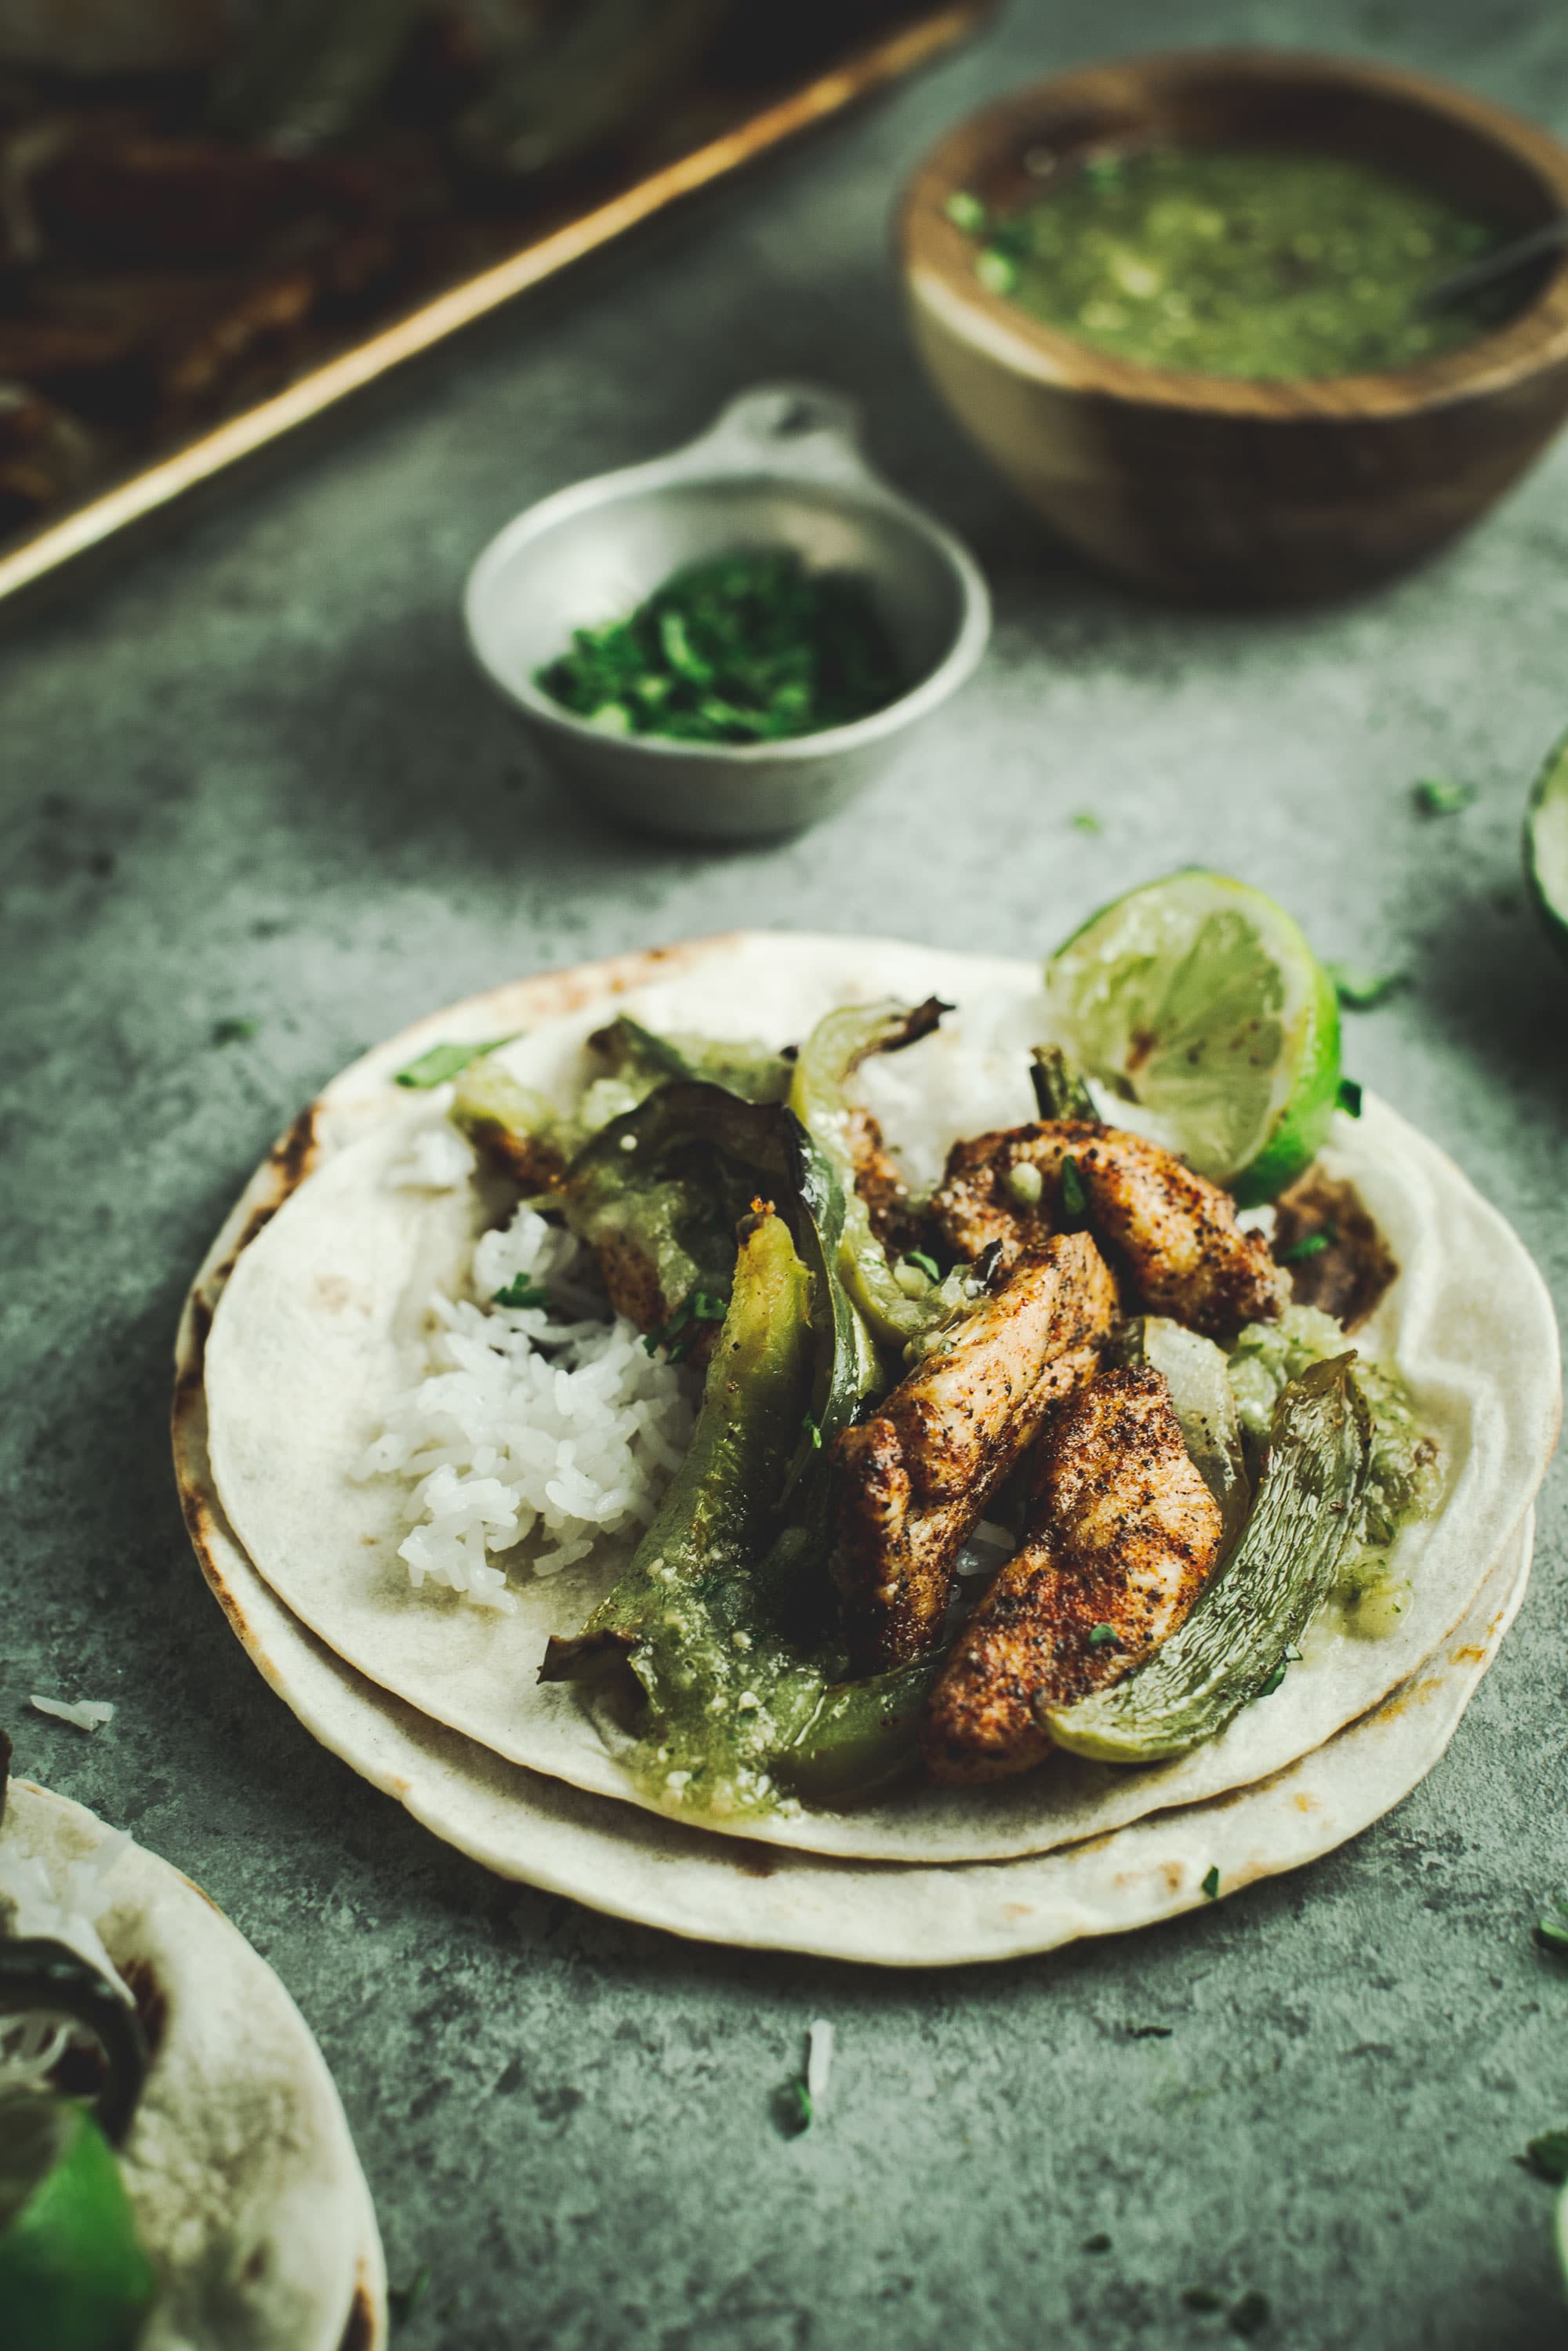 verde chicken fajita with rice and lime on side